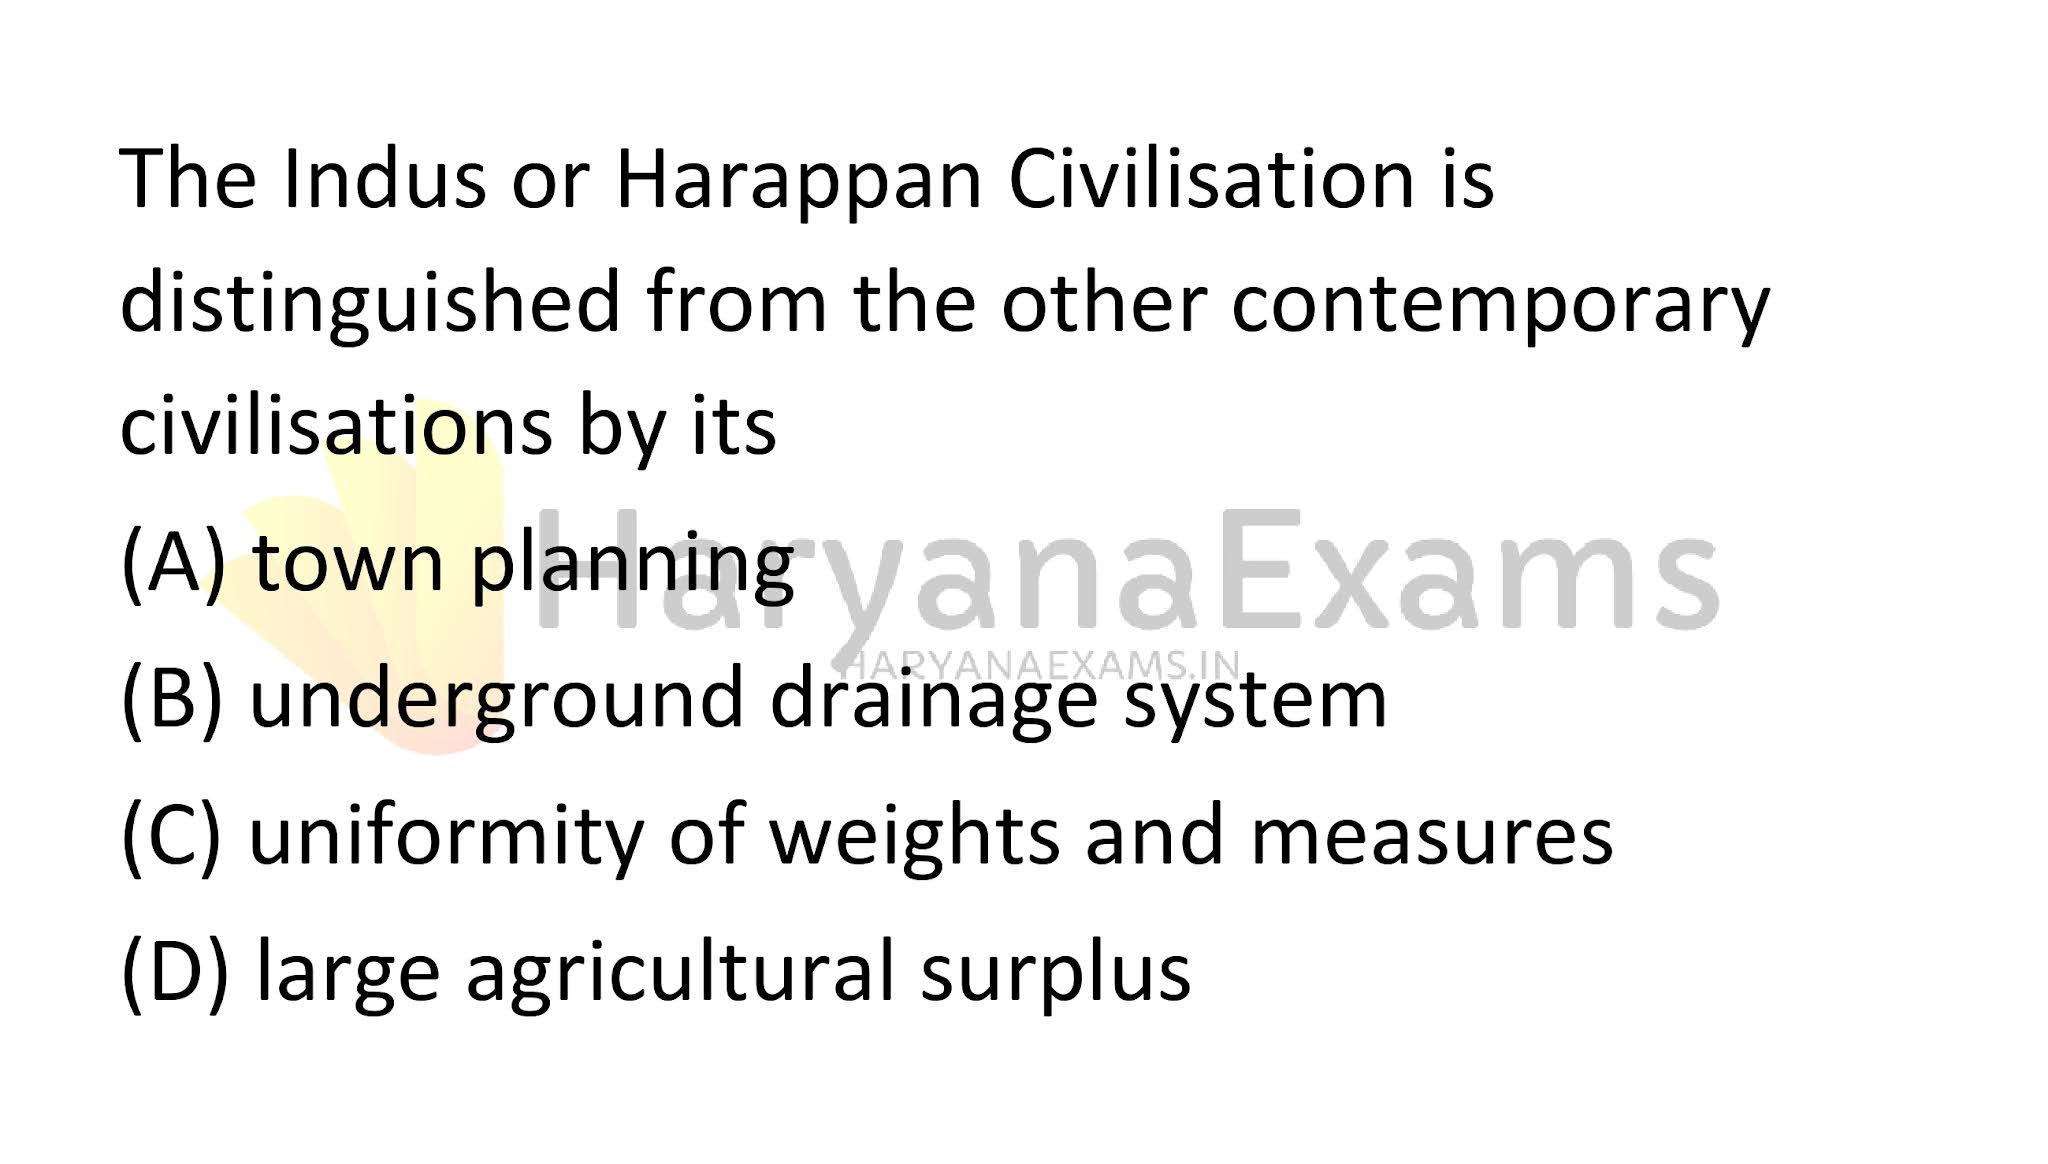 The Indus or Harappan Civilisation is distinguished from the other contemporary civilisations by its